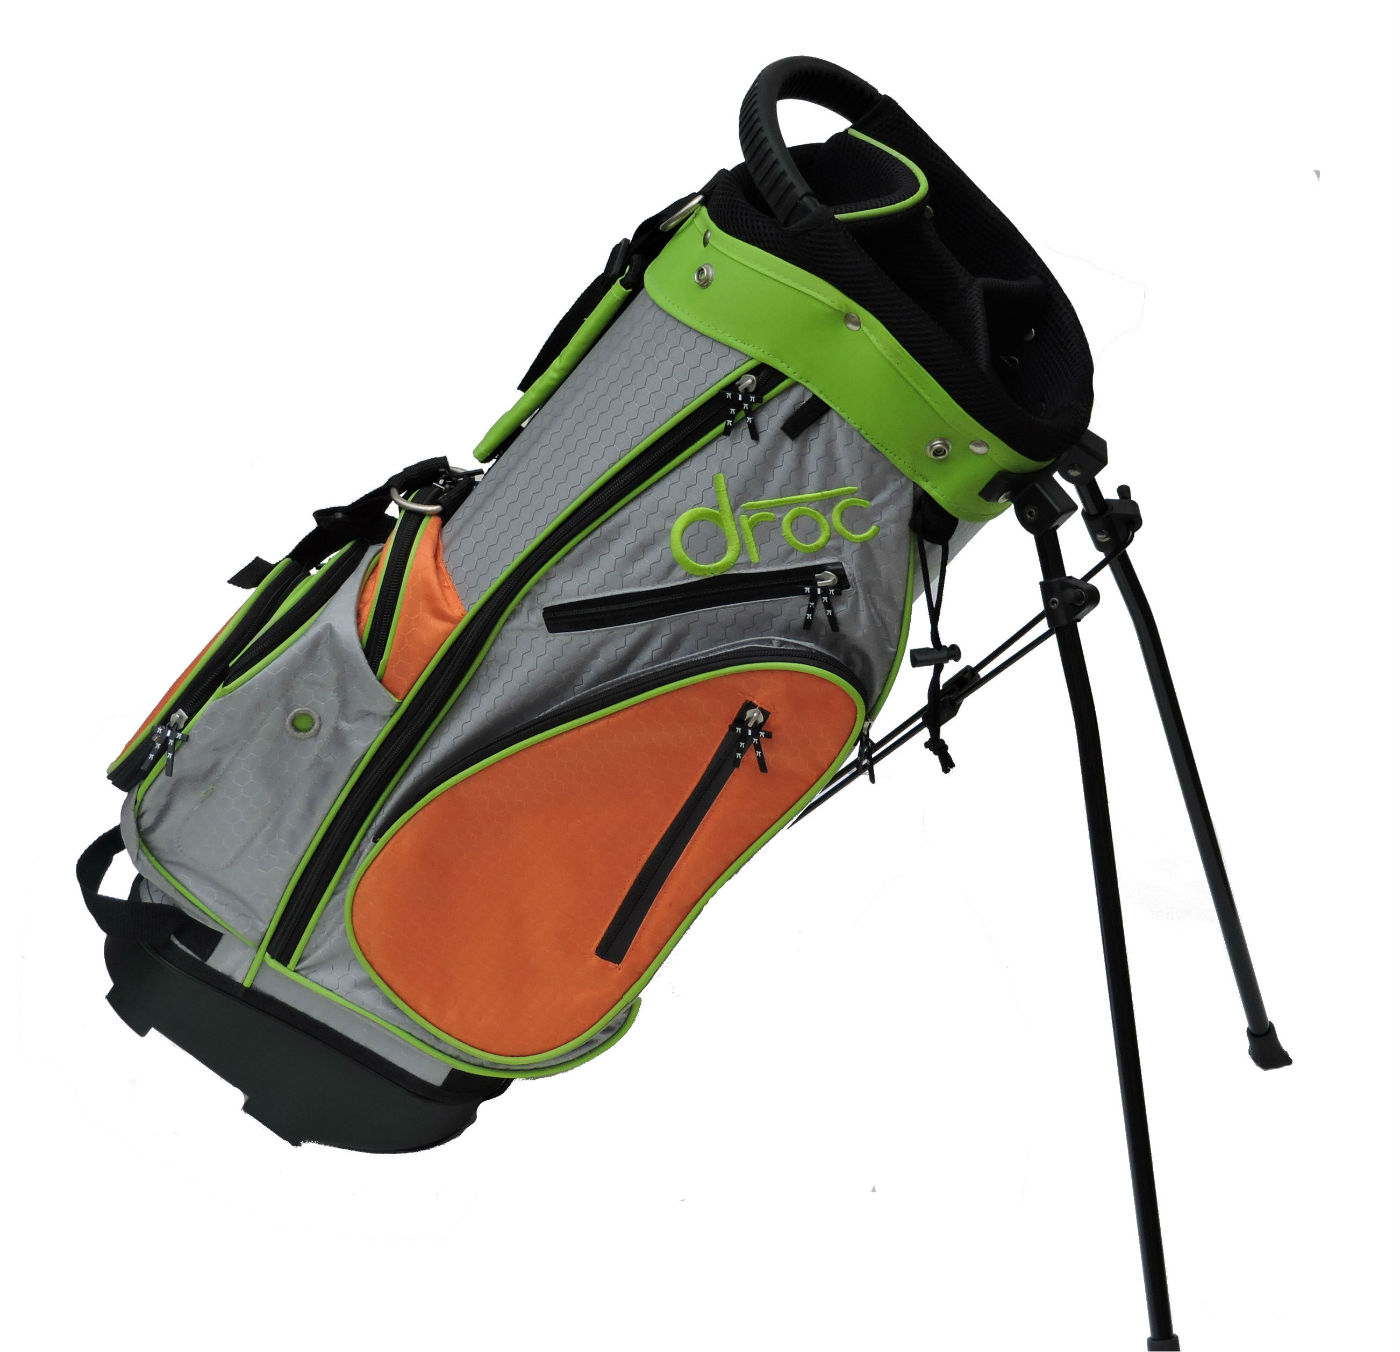 Droc - Noa Golf Bag Ages 6 - 10